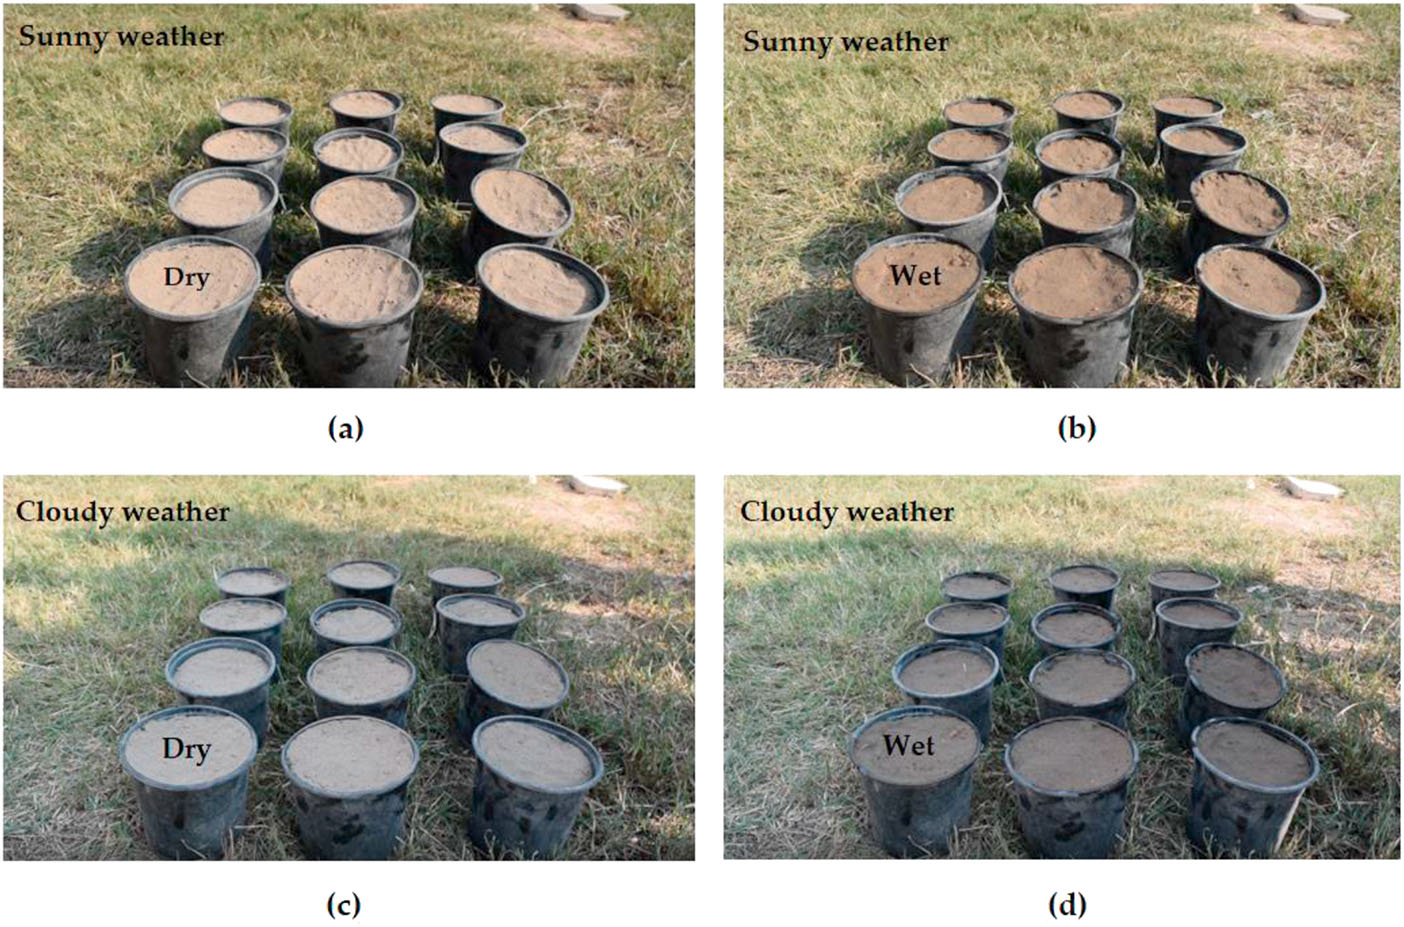 Data collection of the loam soil under four scenarios (a) S1: sunny-dry, (b) S2: sunny-wet, (c) S3: shadow-dry, and (d) S4: shadow-wet.